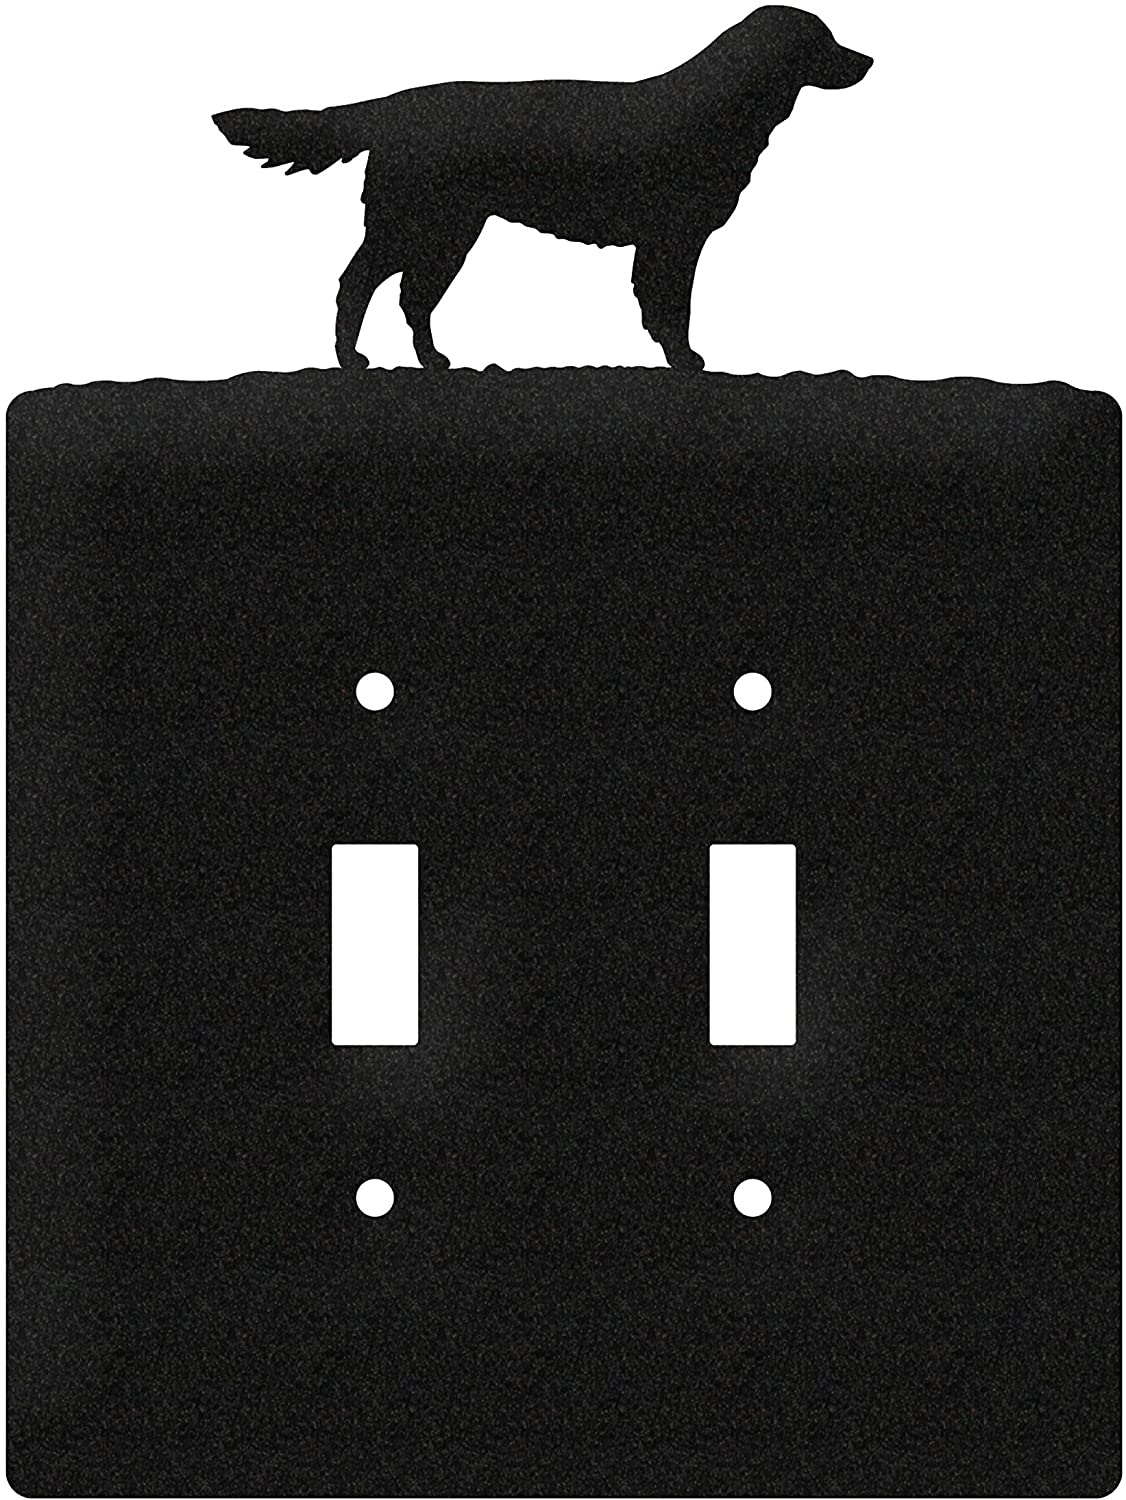 SWEN Products Golden Retriever Metal Wall Plate Cover (Double Switch, Black)